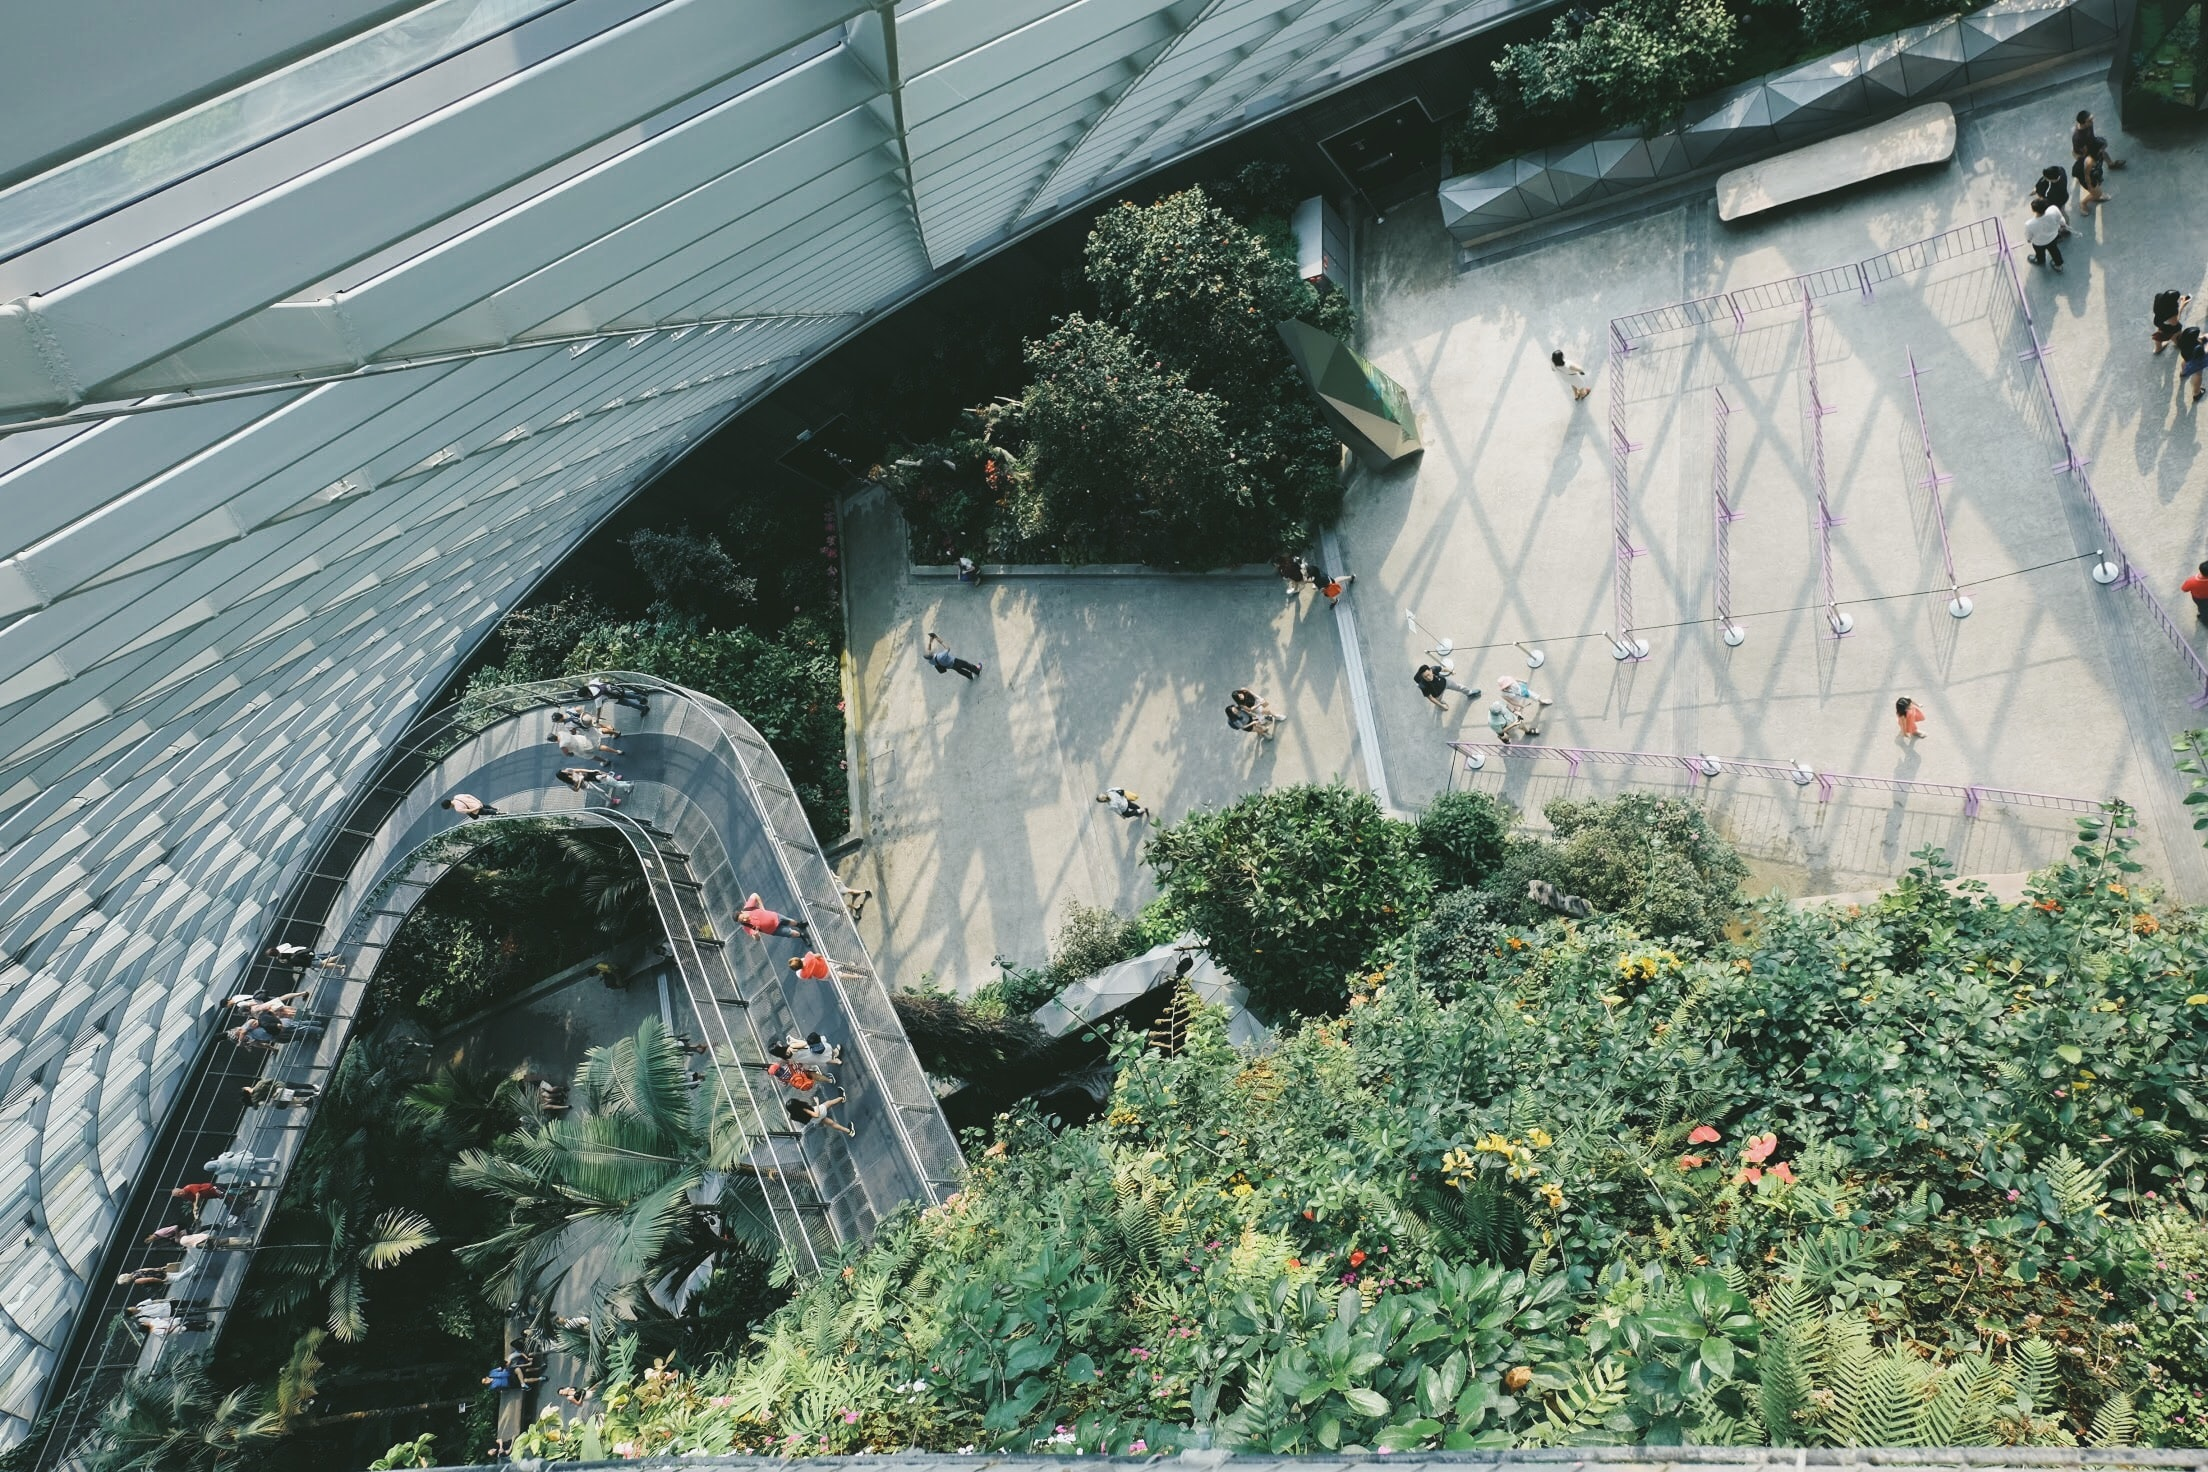 aerial view of people walking towards the building